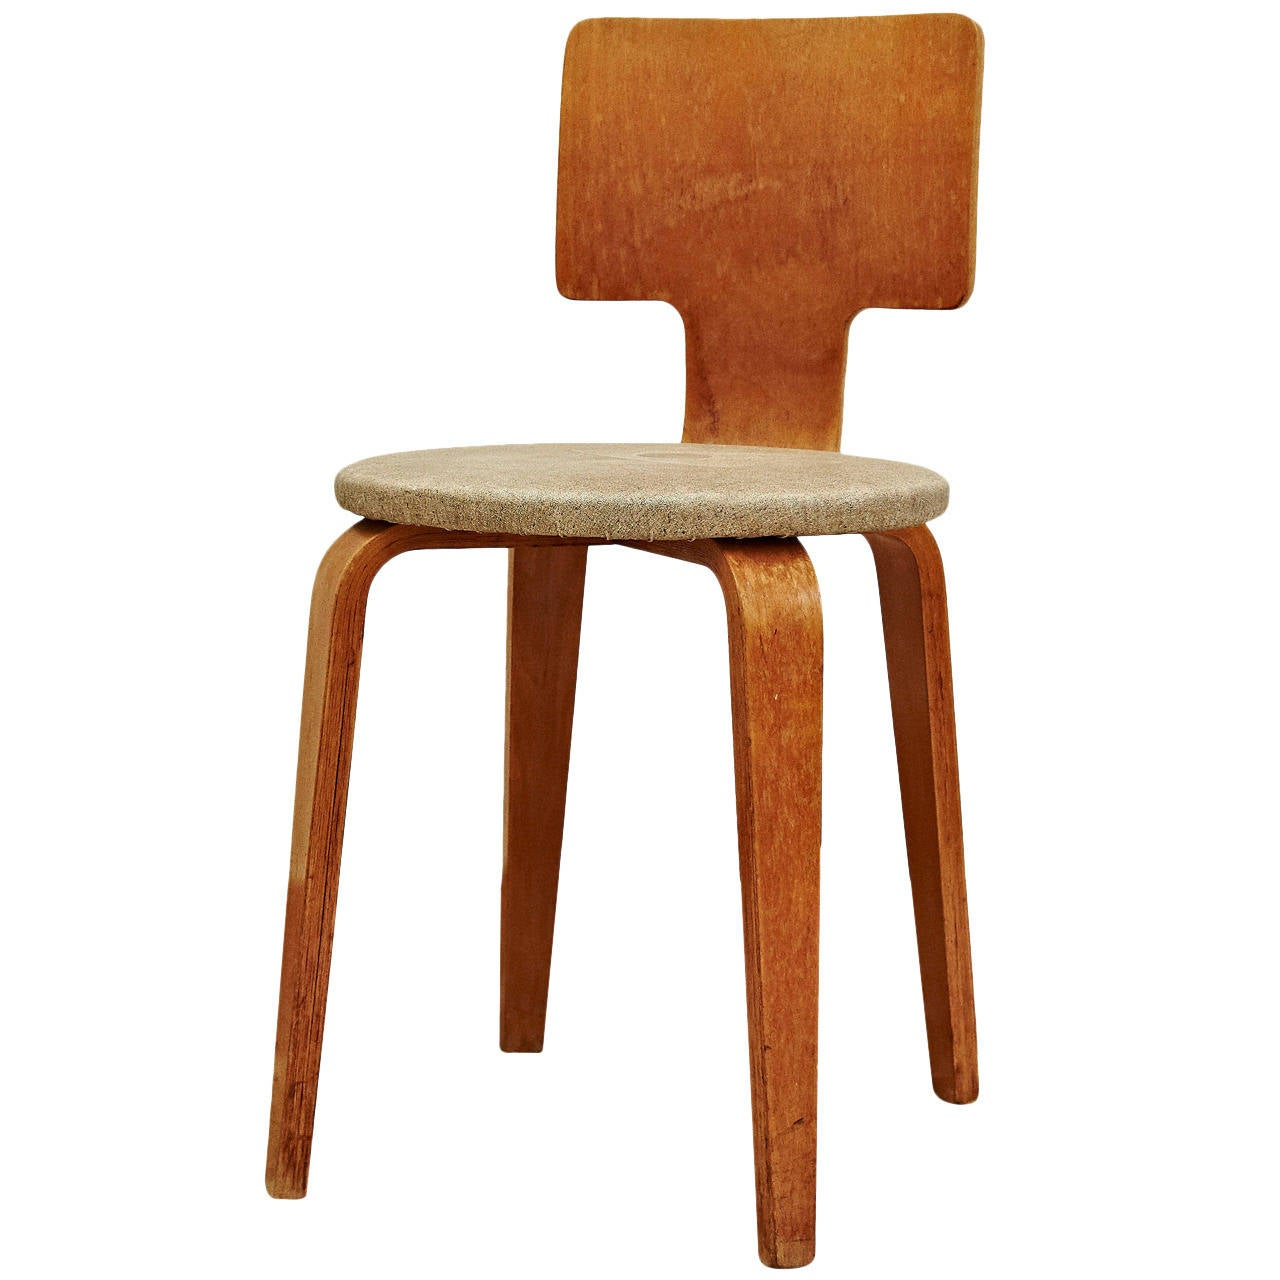 Cor Alons Chair circa 1950 For Sale at 1stdibs